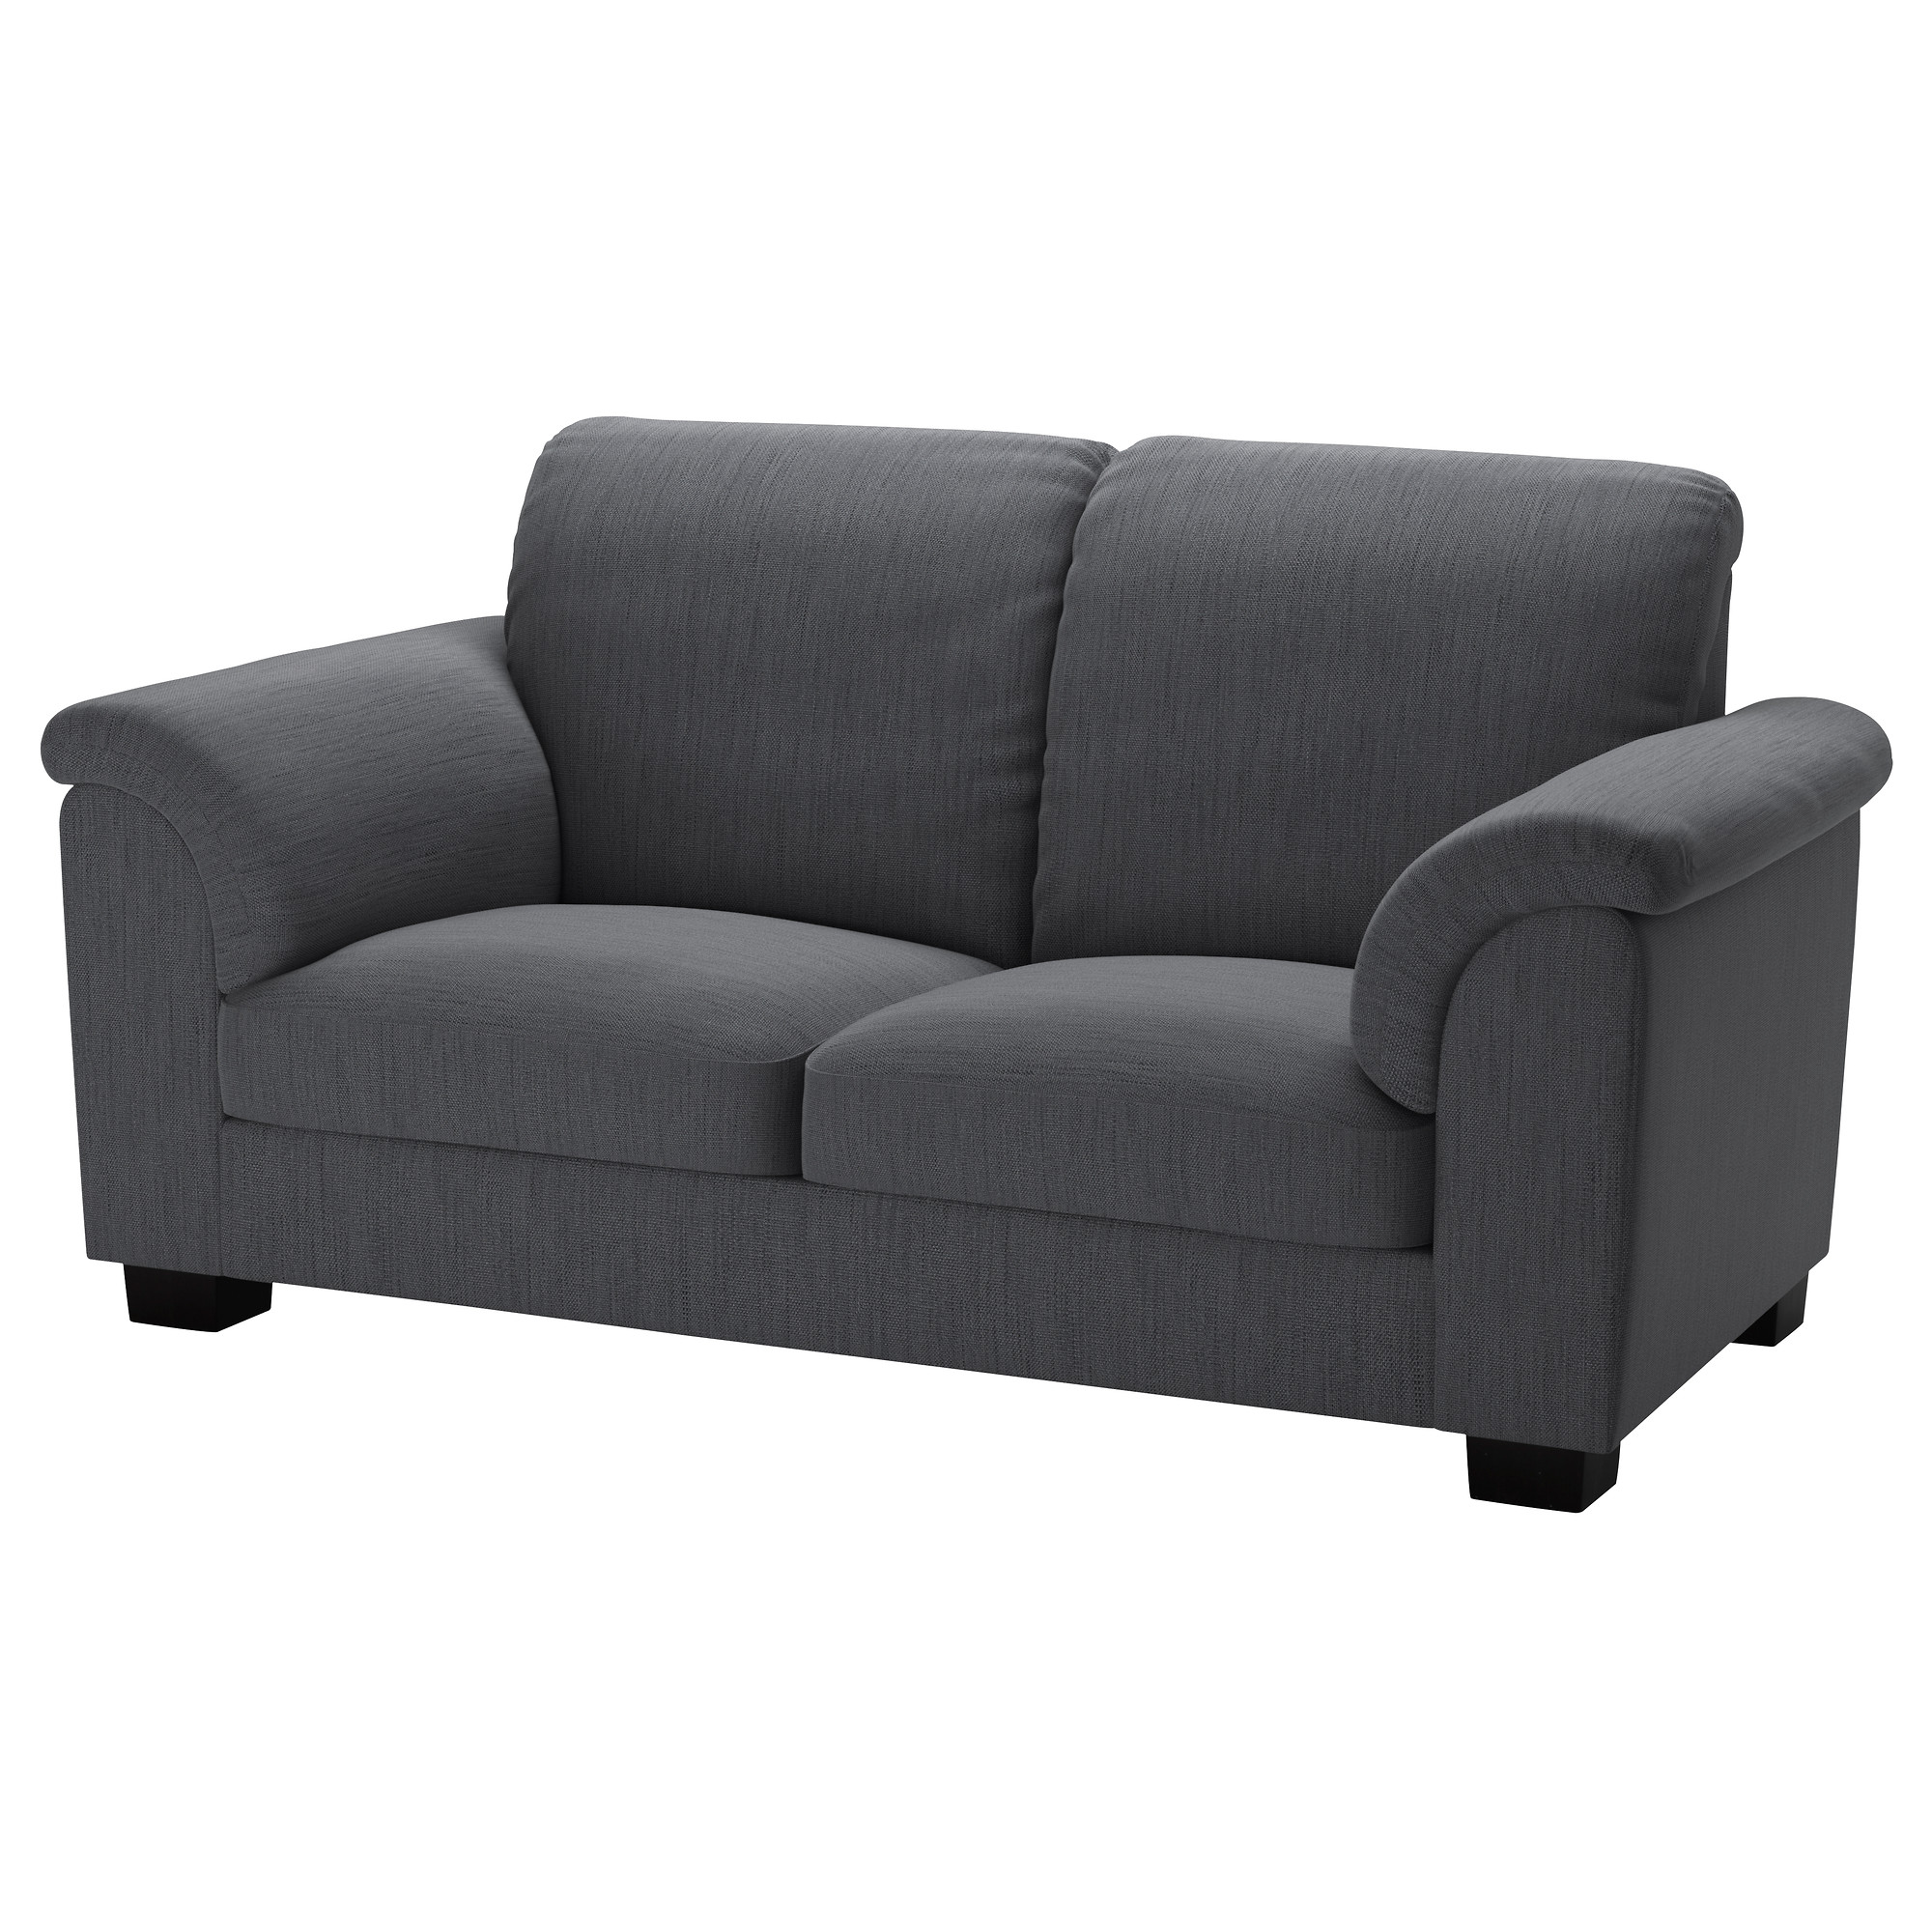 Ikea Us Furniture And Home Furnishings Fabric Sofa Ikea Sofa Two Seater Couch